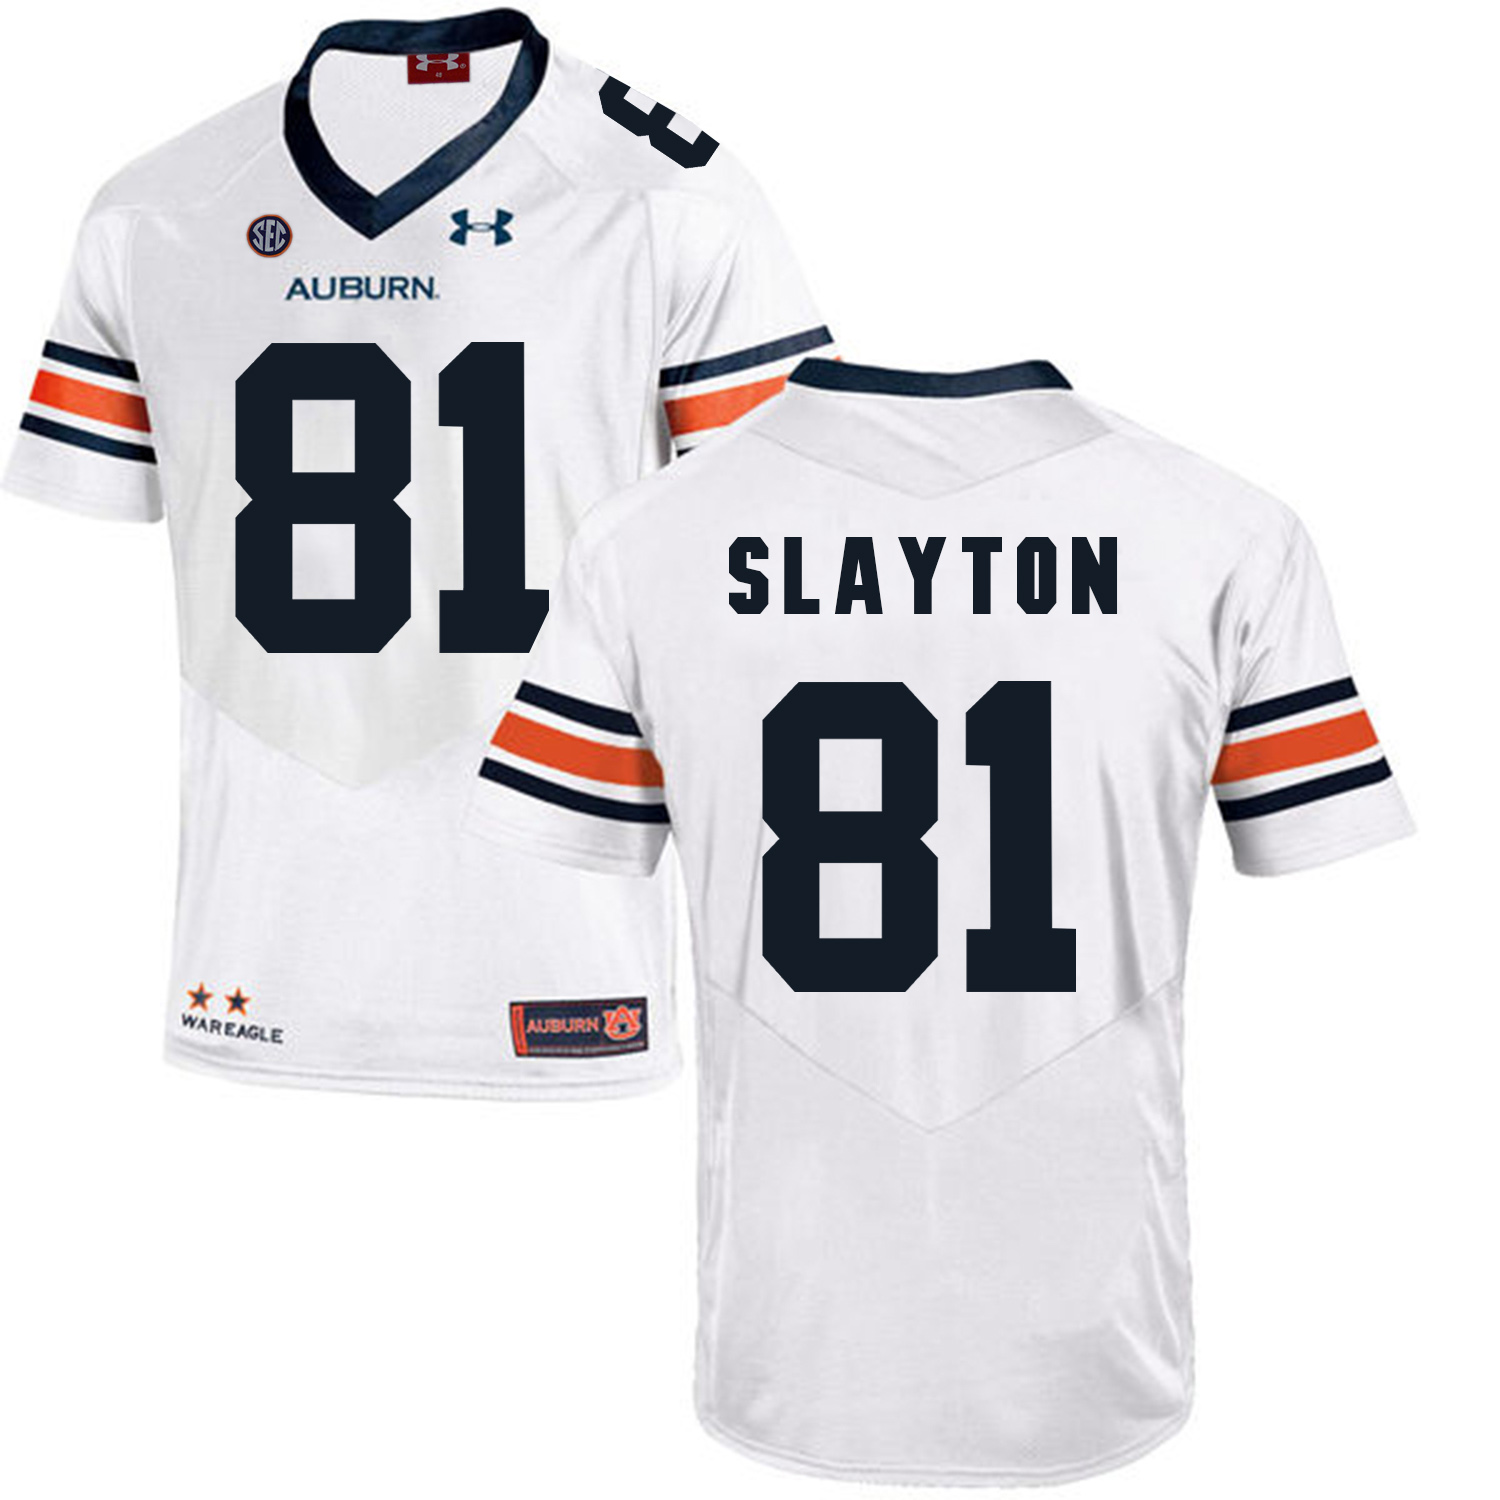 Auburn Tigers 81 Darius Slayton White College Football Jersey